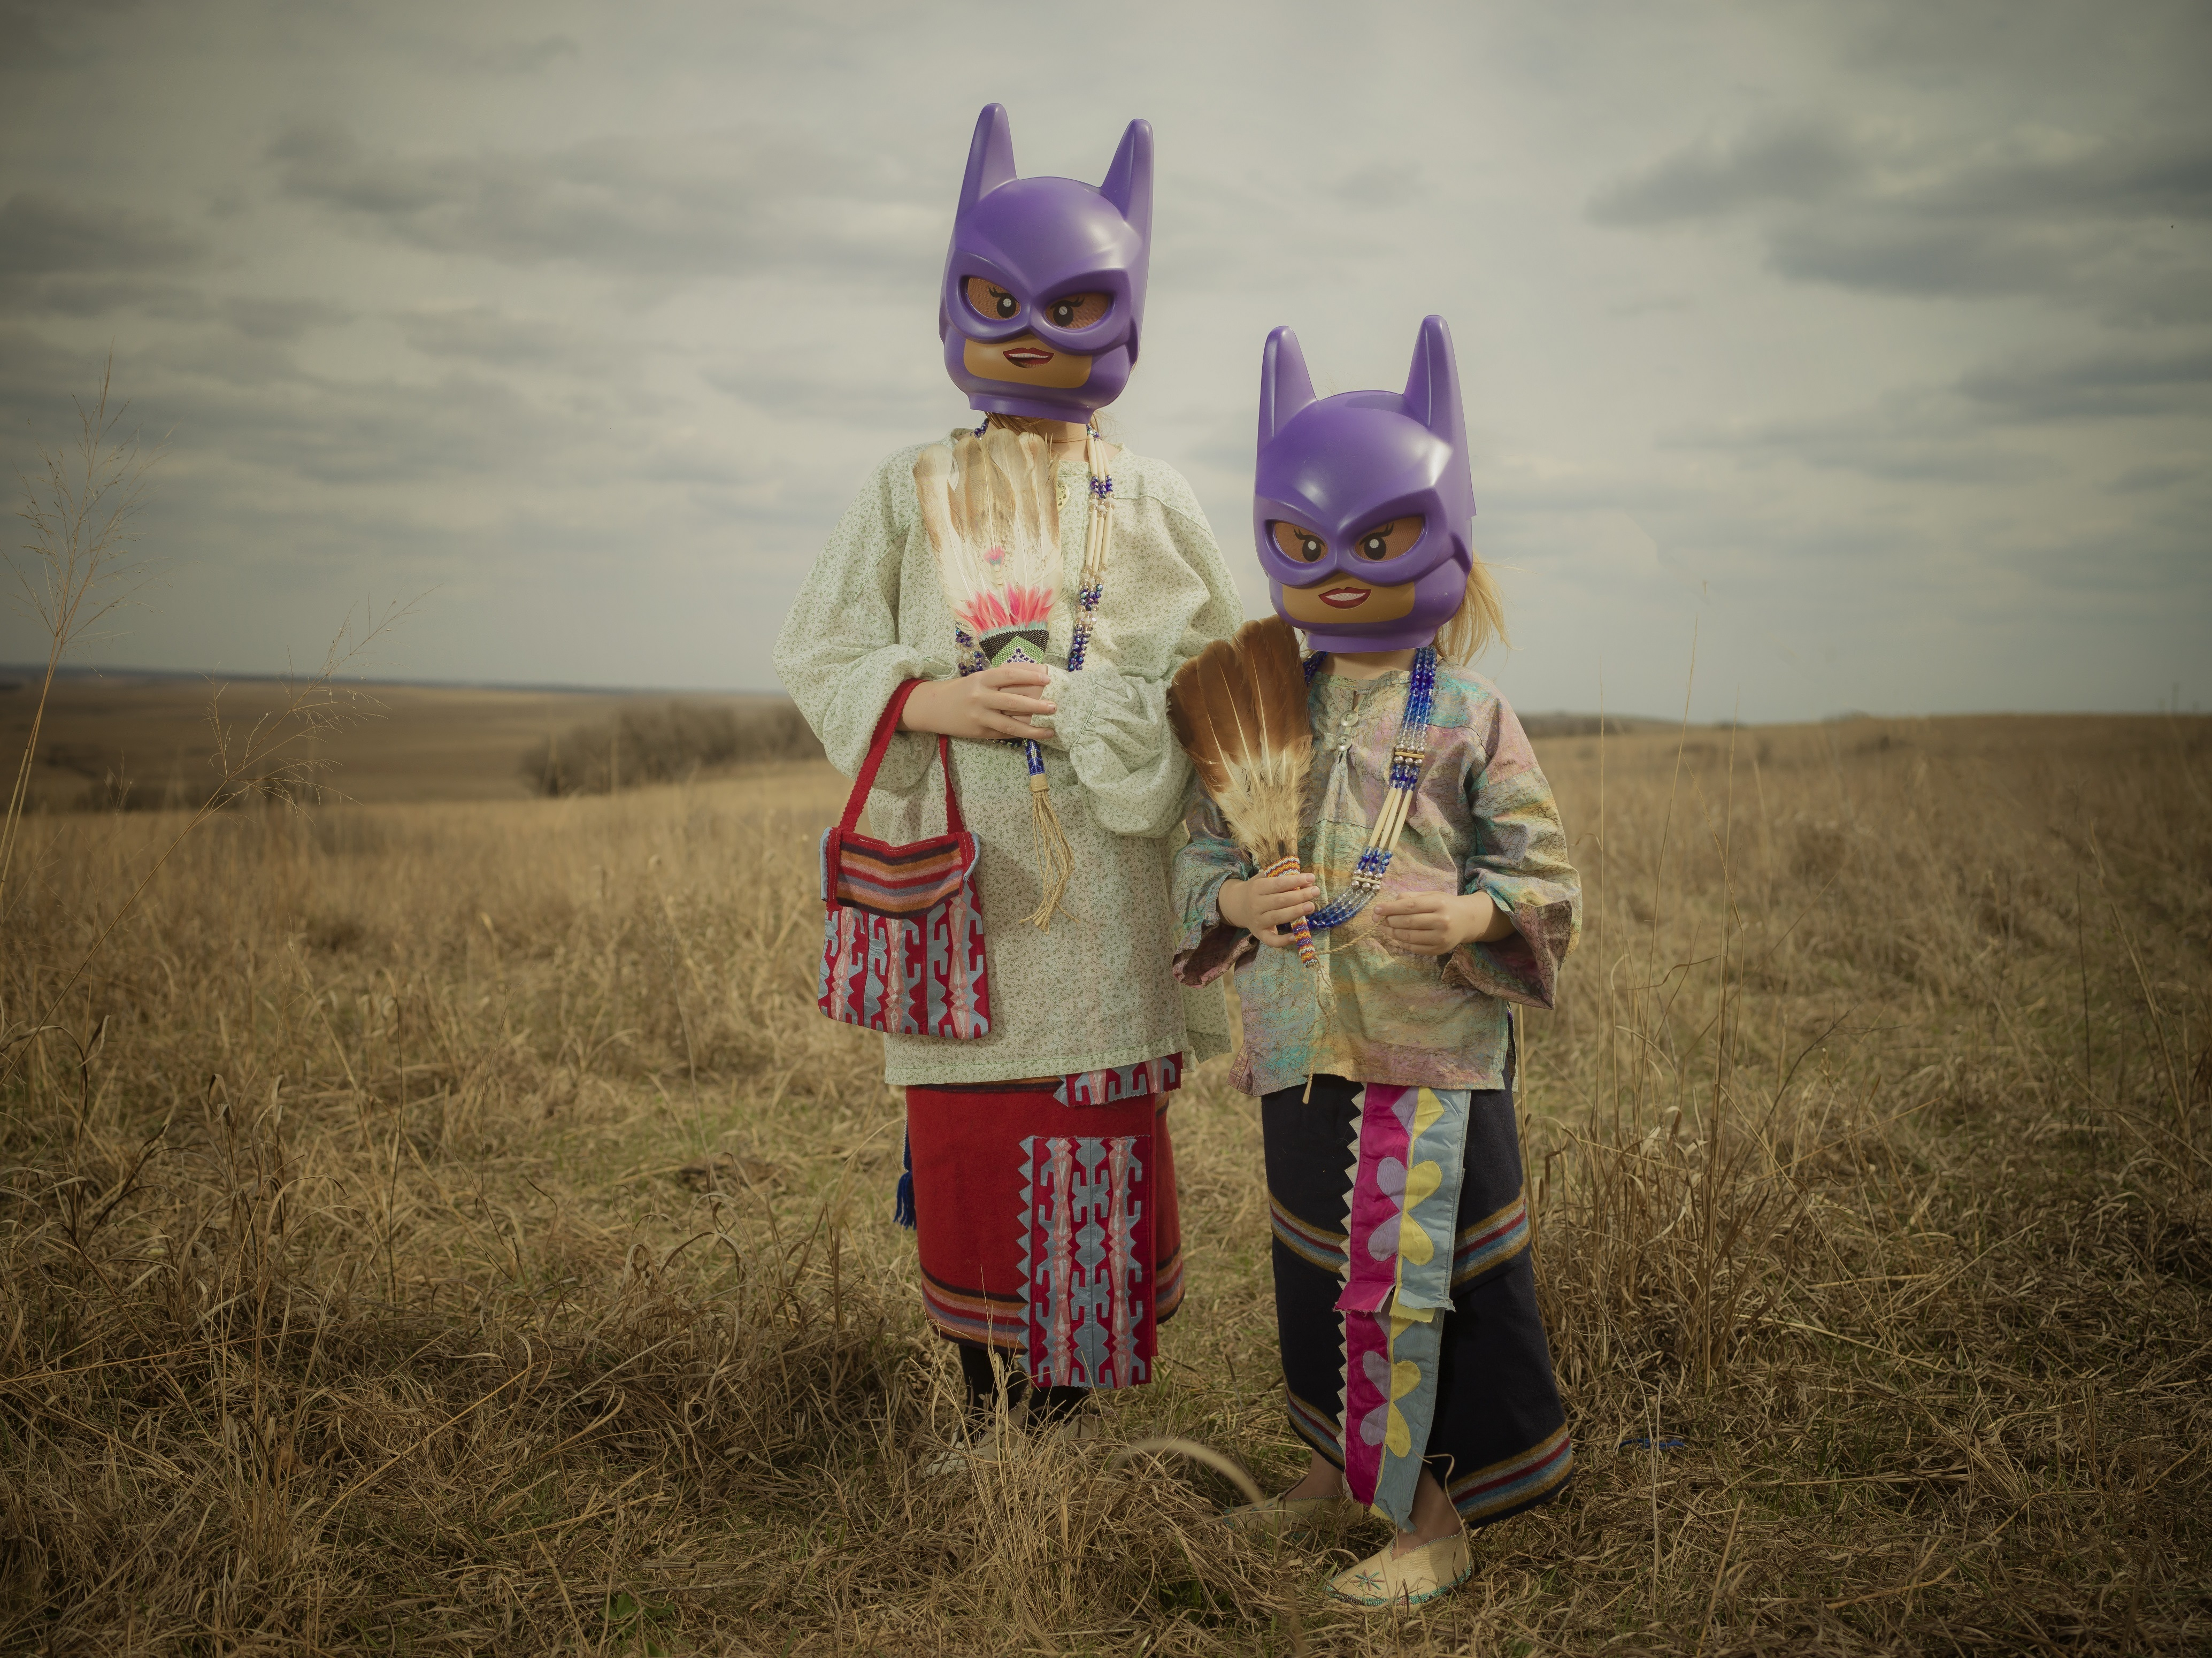 An artistic photograph depicts two young children wearing Native regalia and purple Bat Girl masks on an open prairie